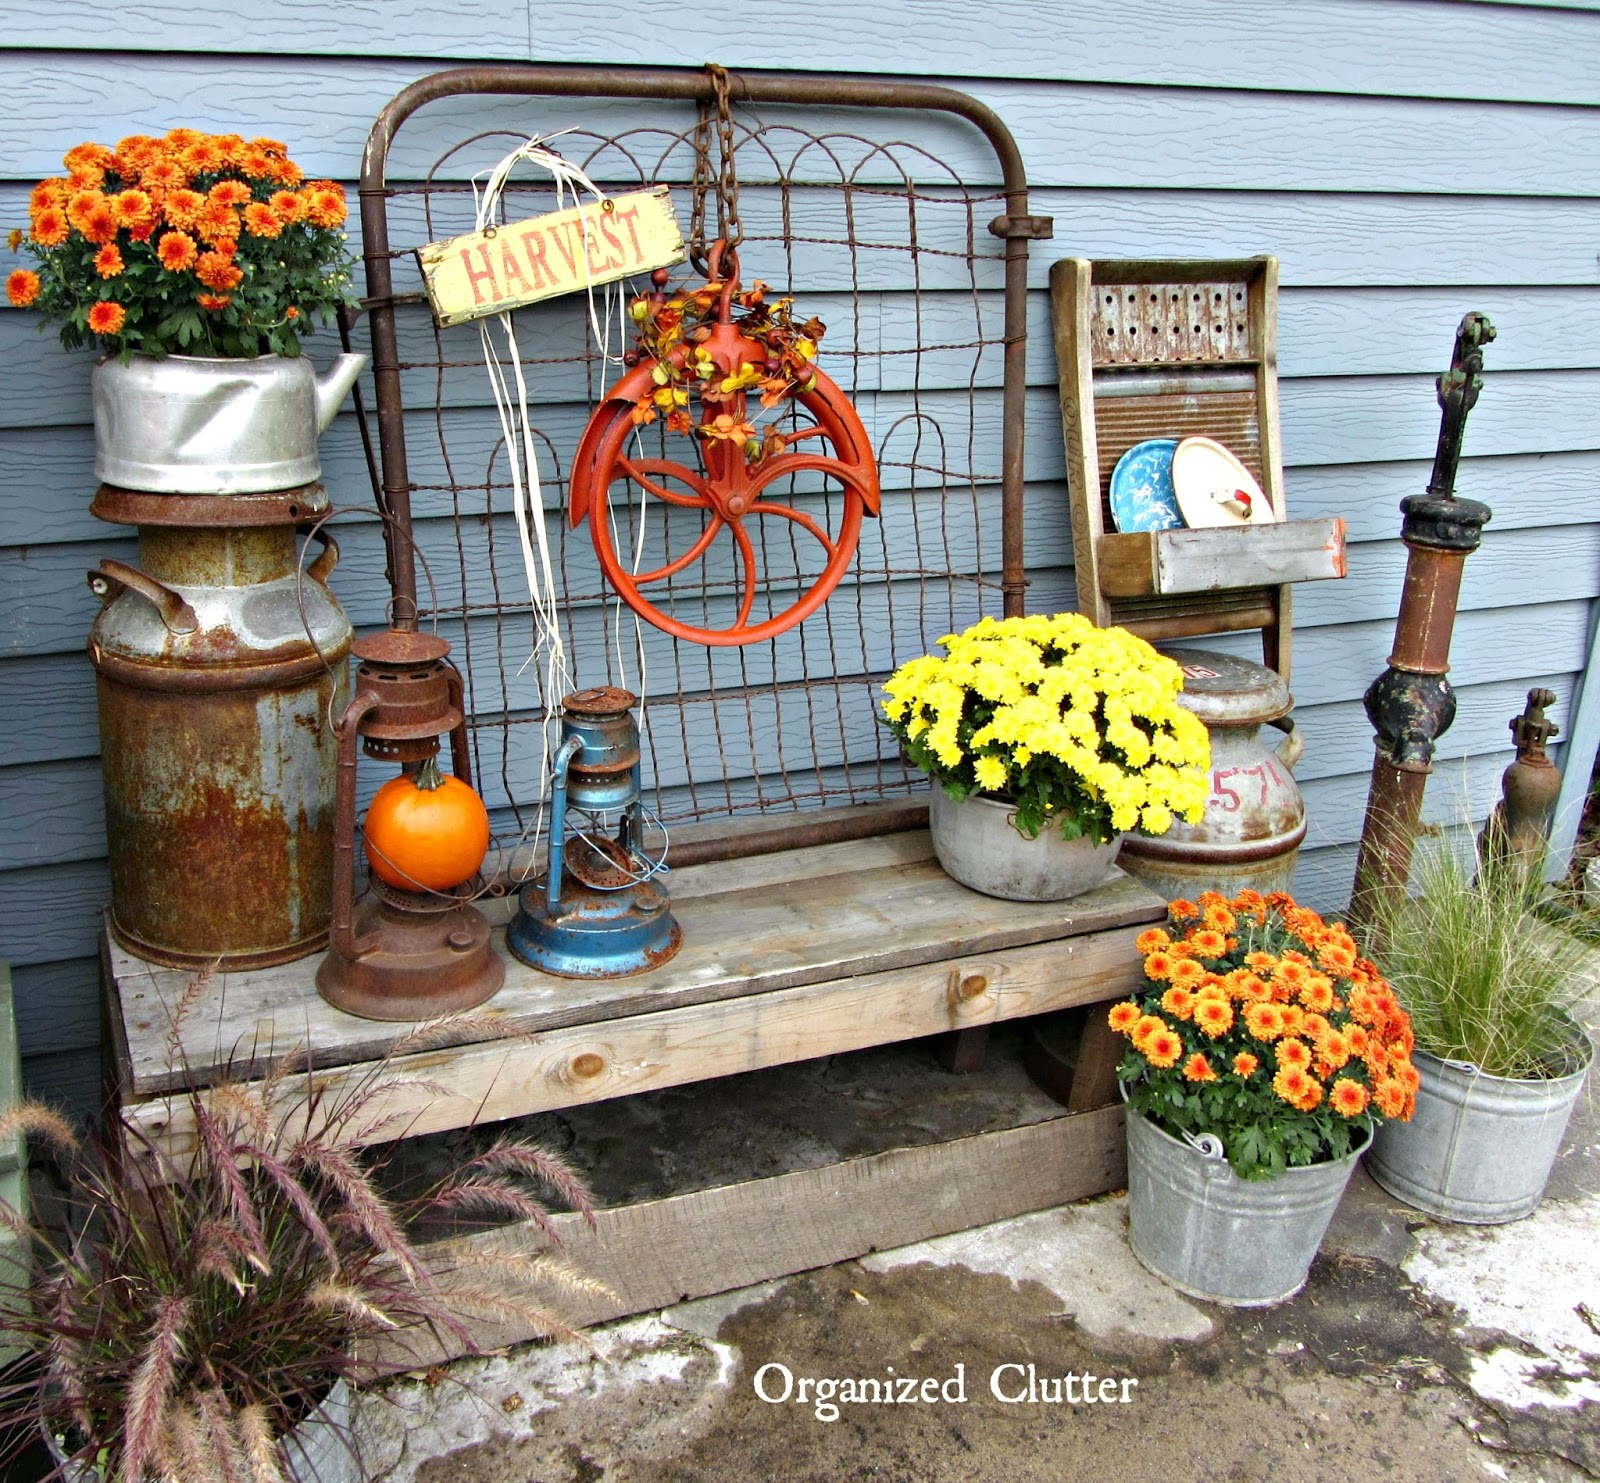 Fall Outdoor Decor A Salvage Style Event Organized Clutter